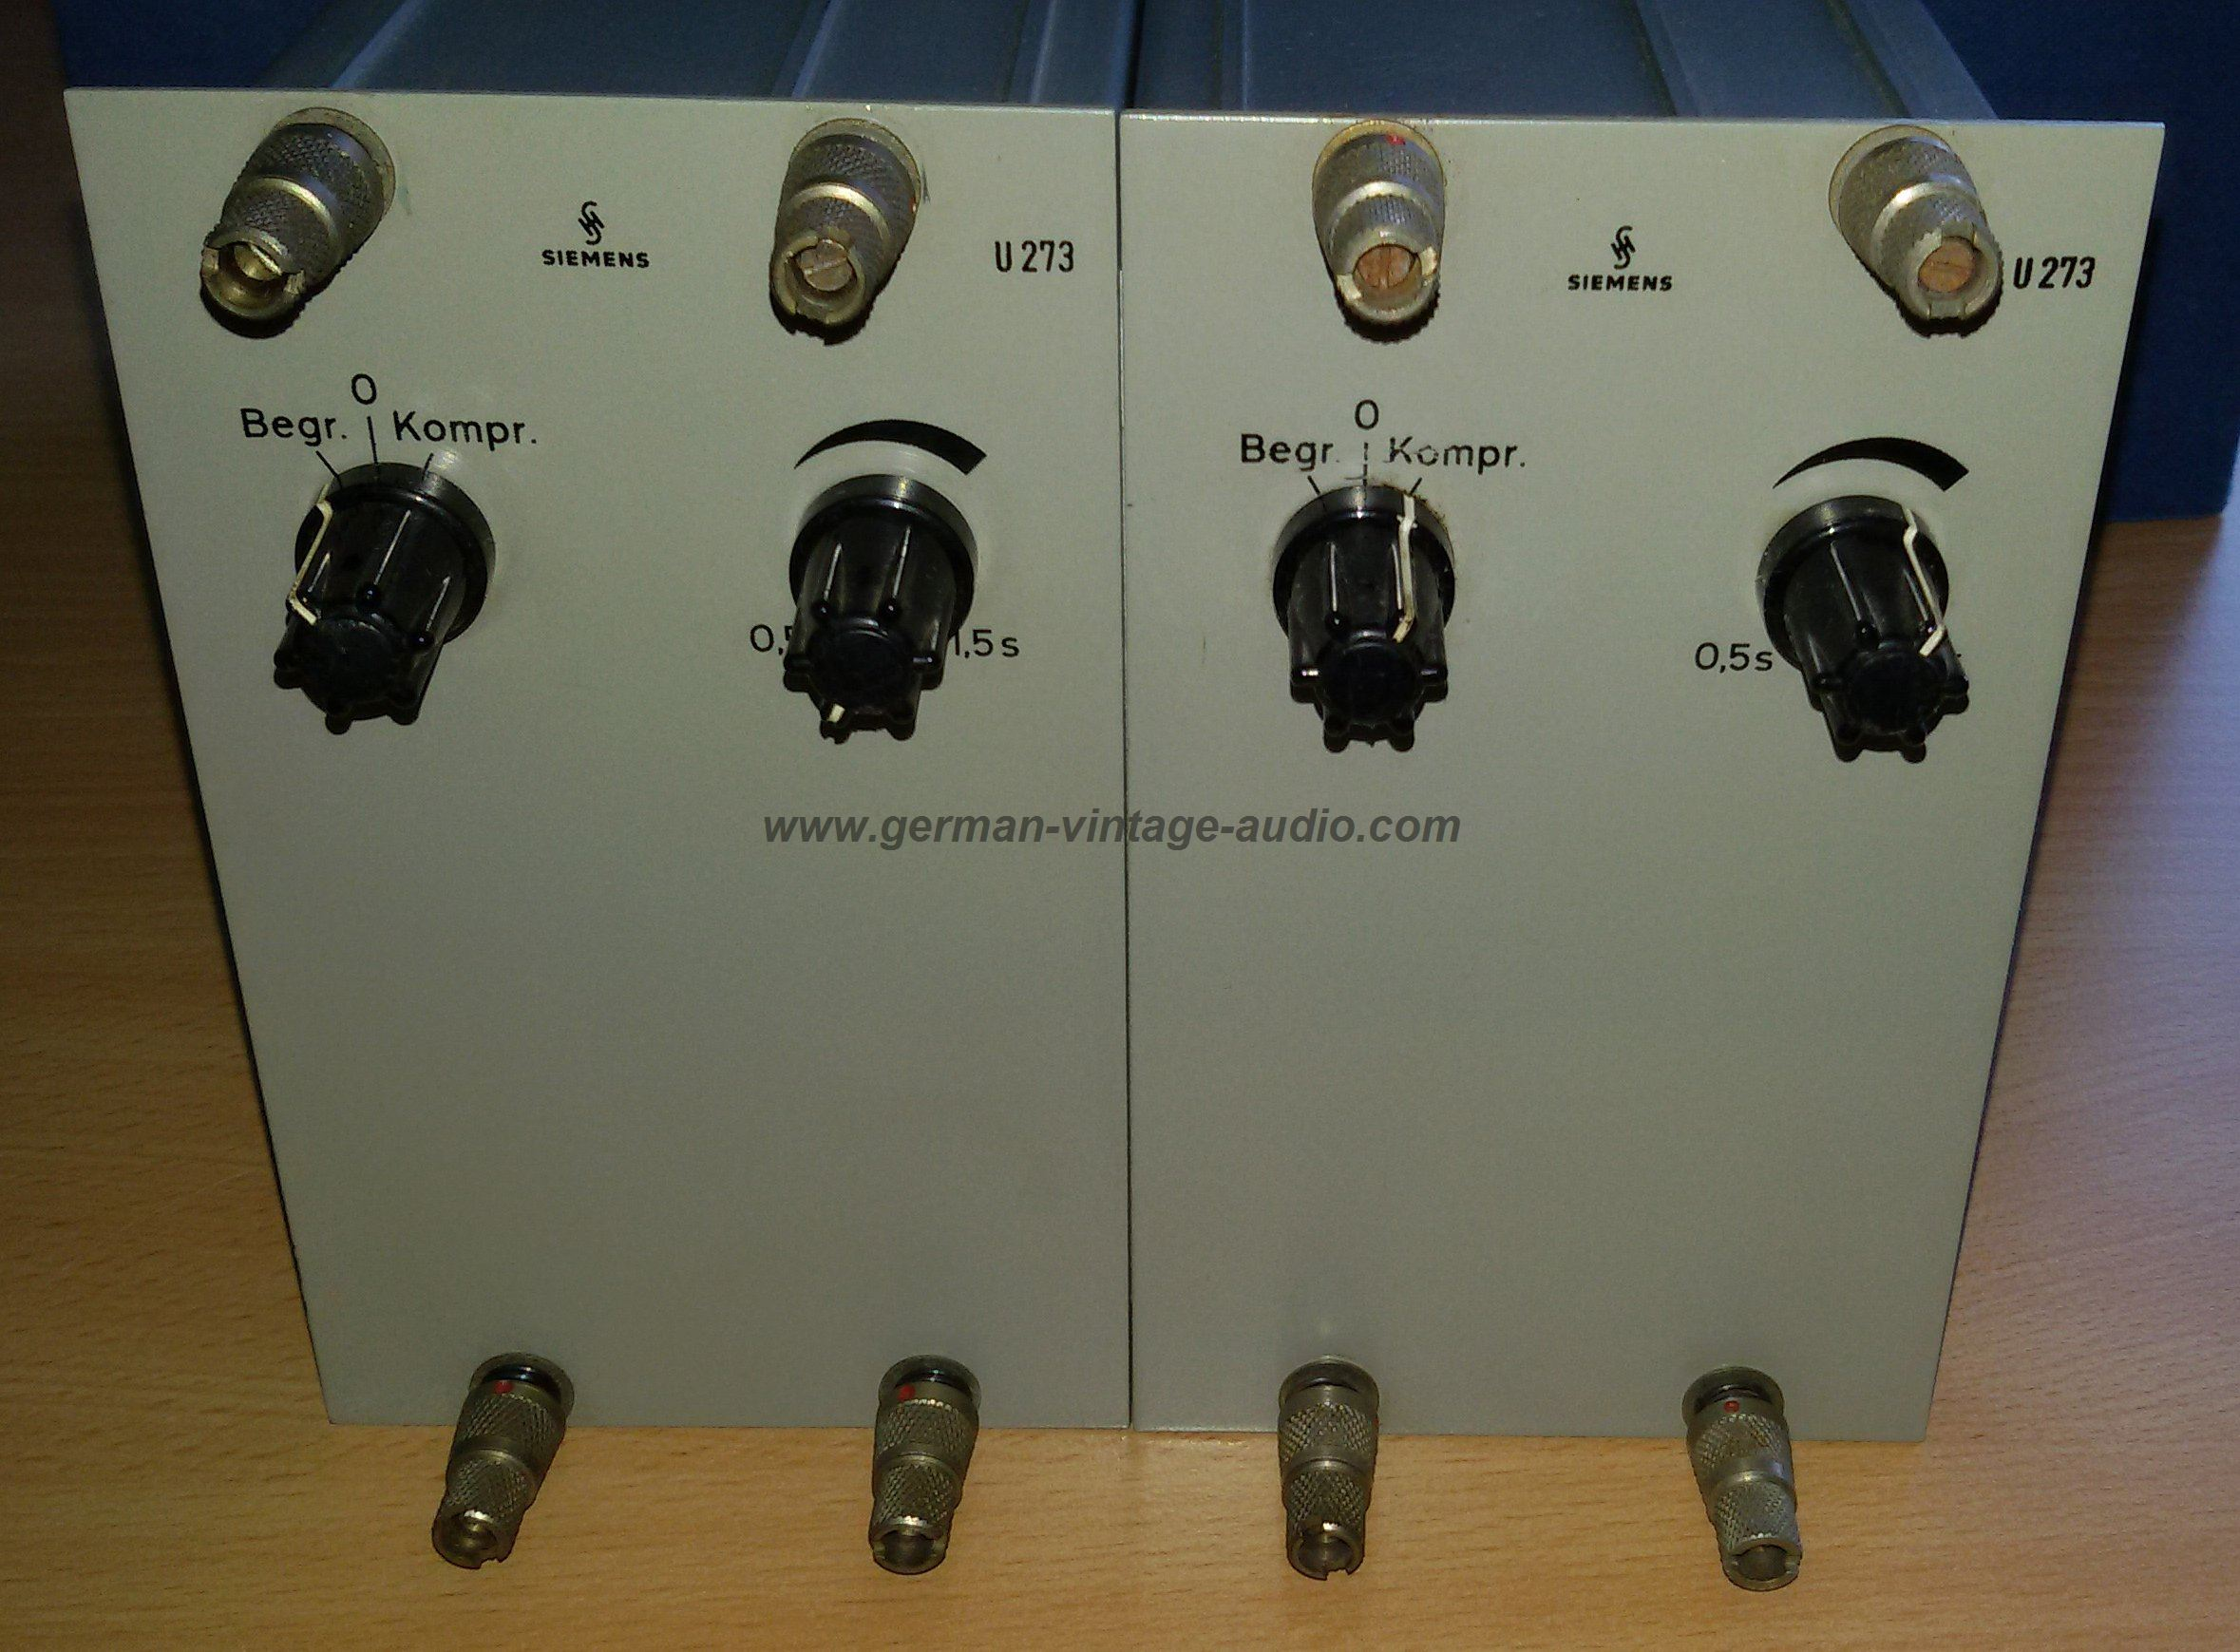 German Vintage Audio - Siemens Sitral U273 Compressor/ Limiter